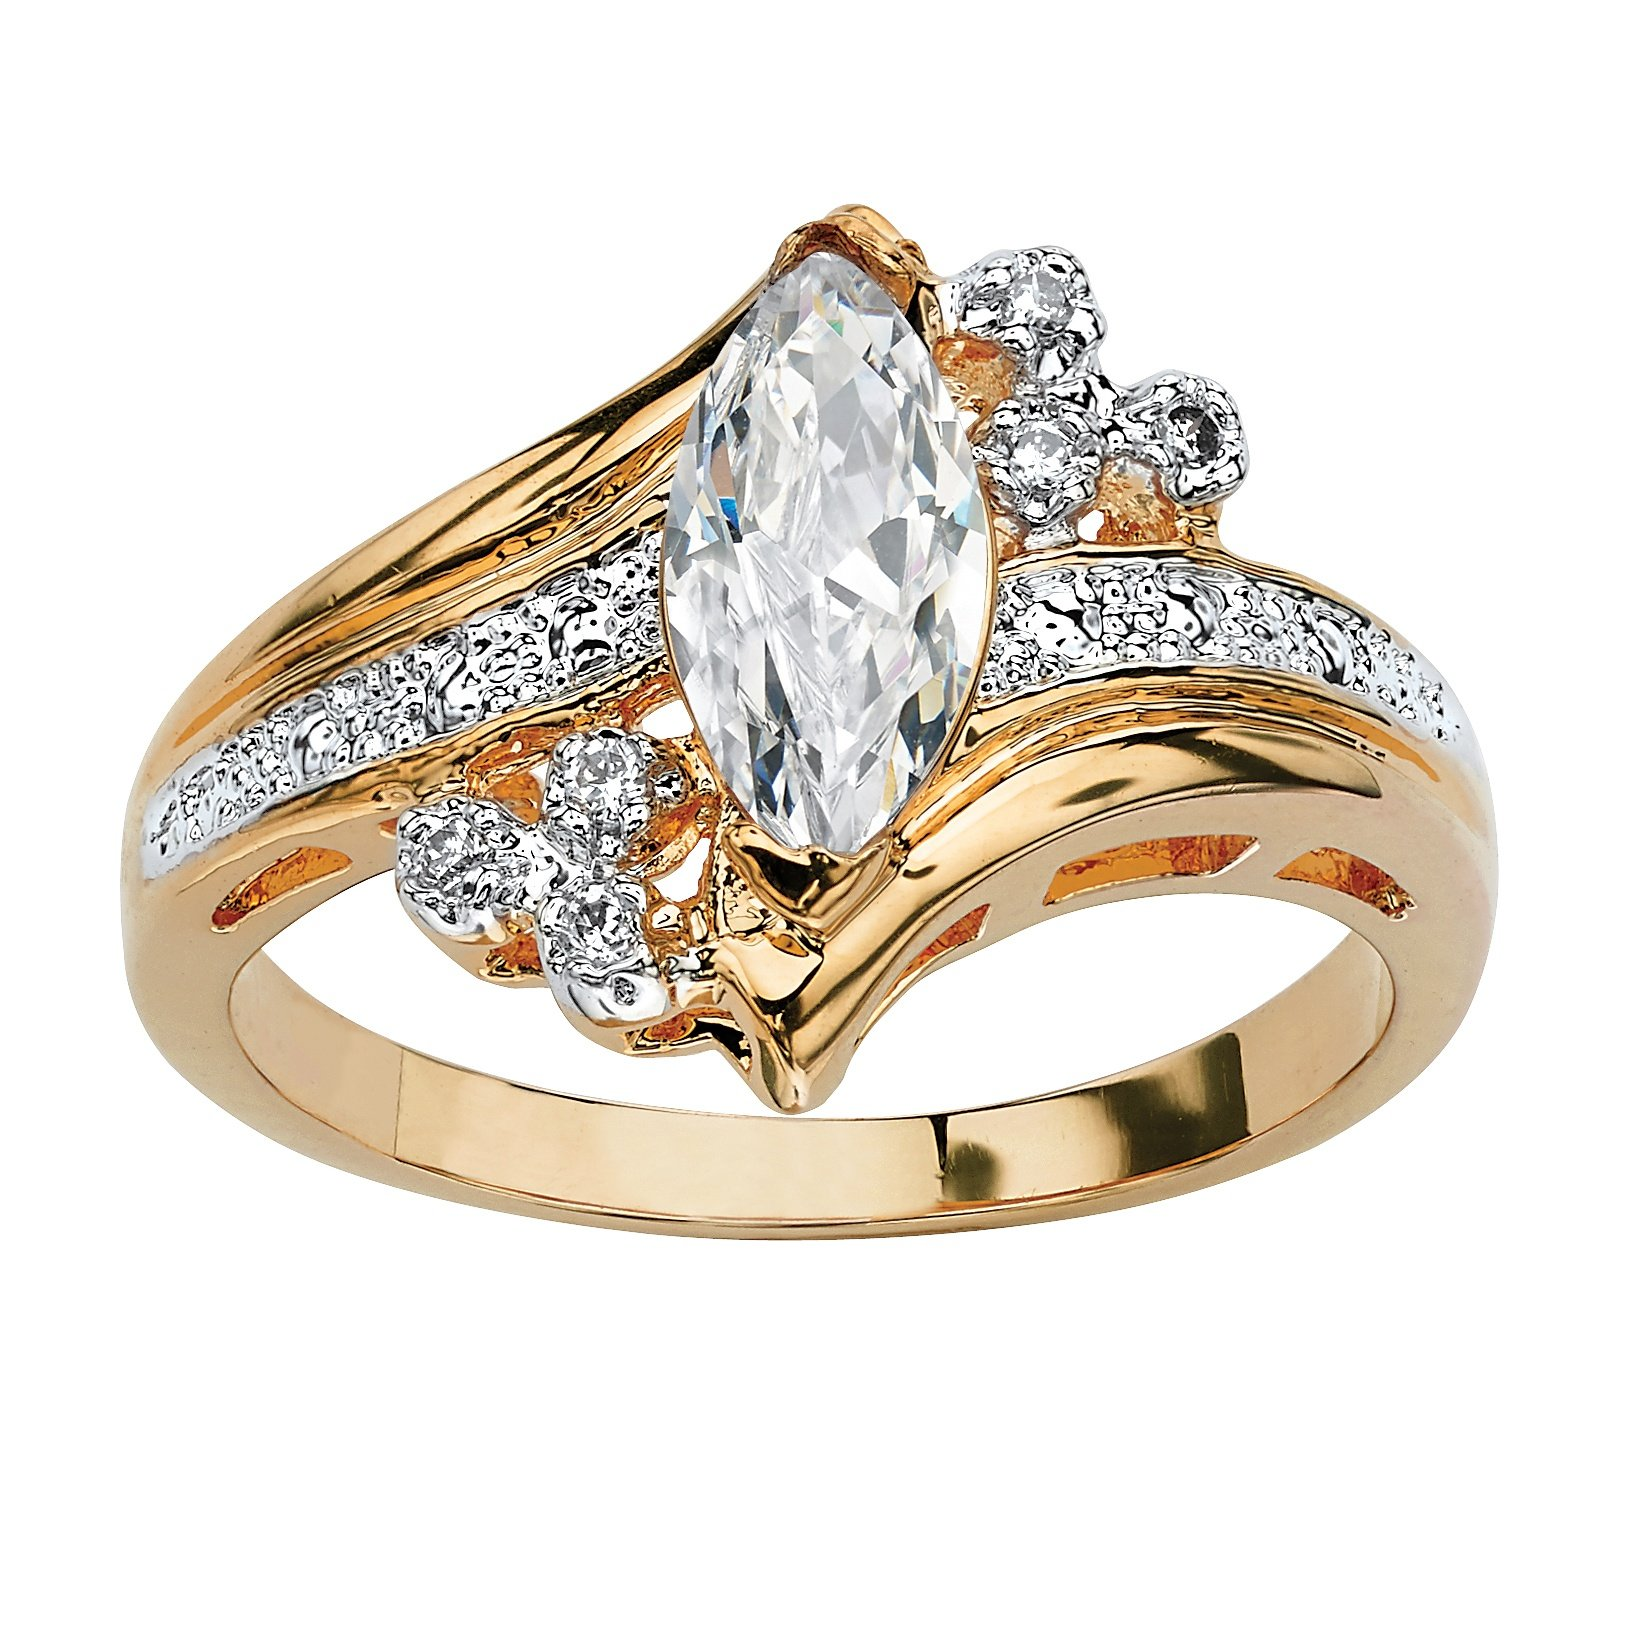 Palm Beach Jewelry 14K Yellow Gold-Plated Marquise Cut Cubic Zirconia Engagement Anniversary Ring Size 8